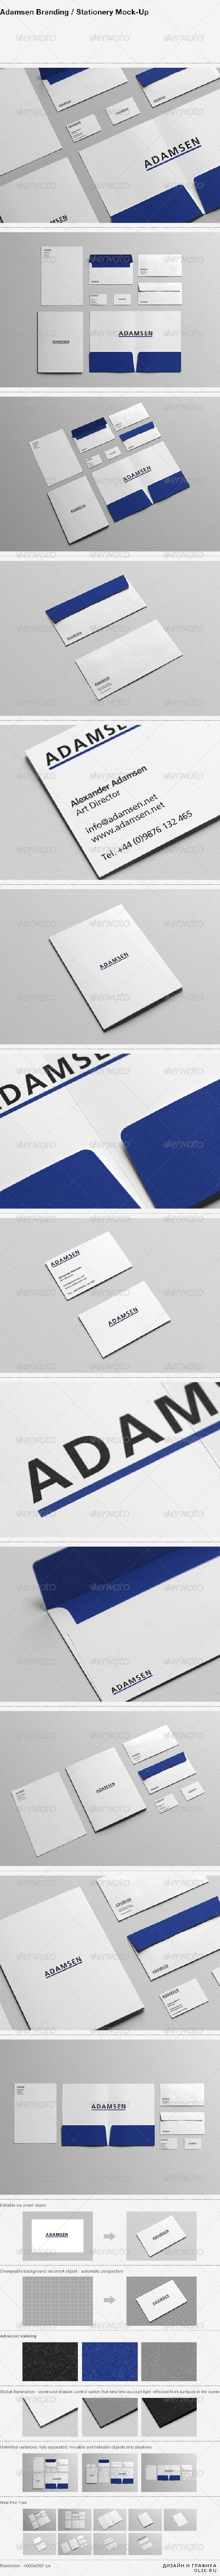 GraphicRiver Adamsen - Branding / Stationery Mock-Up 6685183